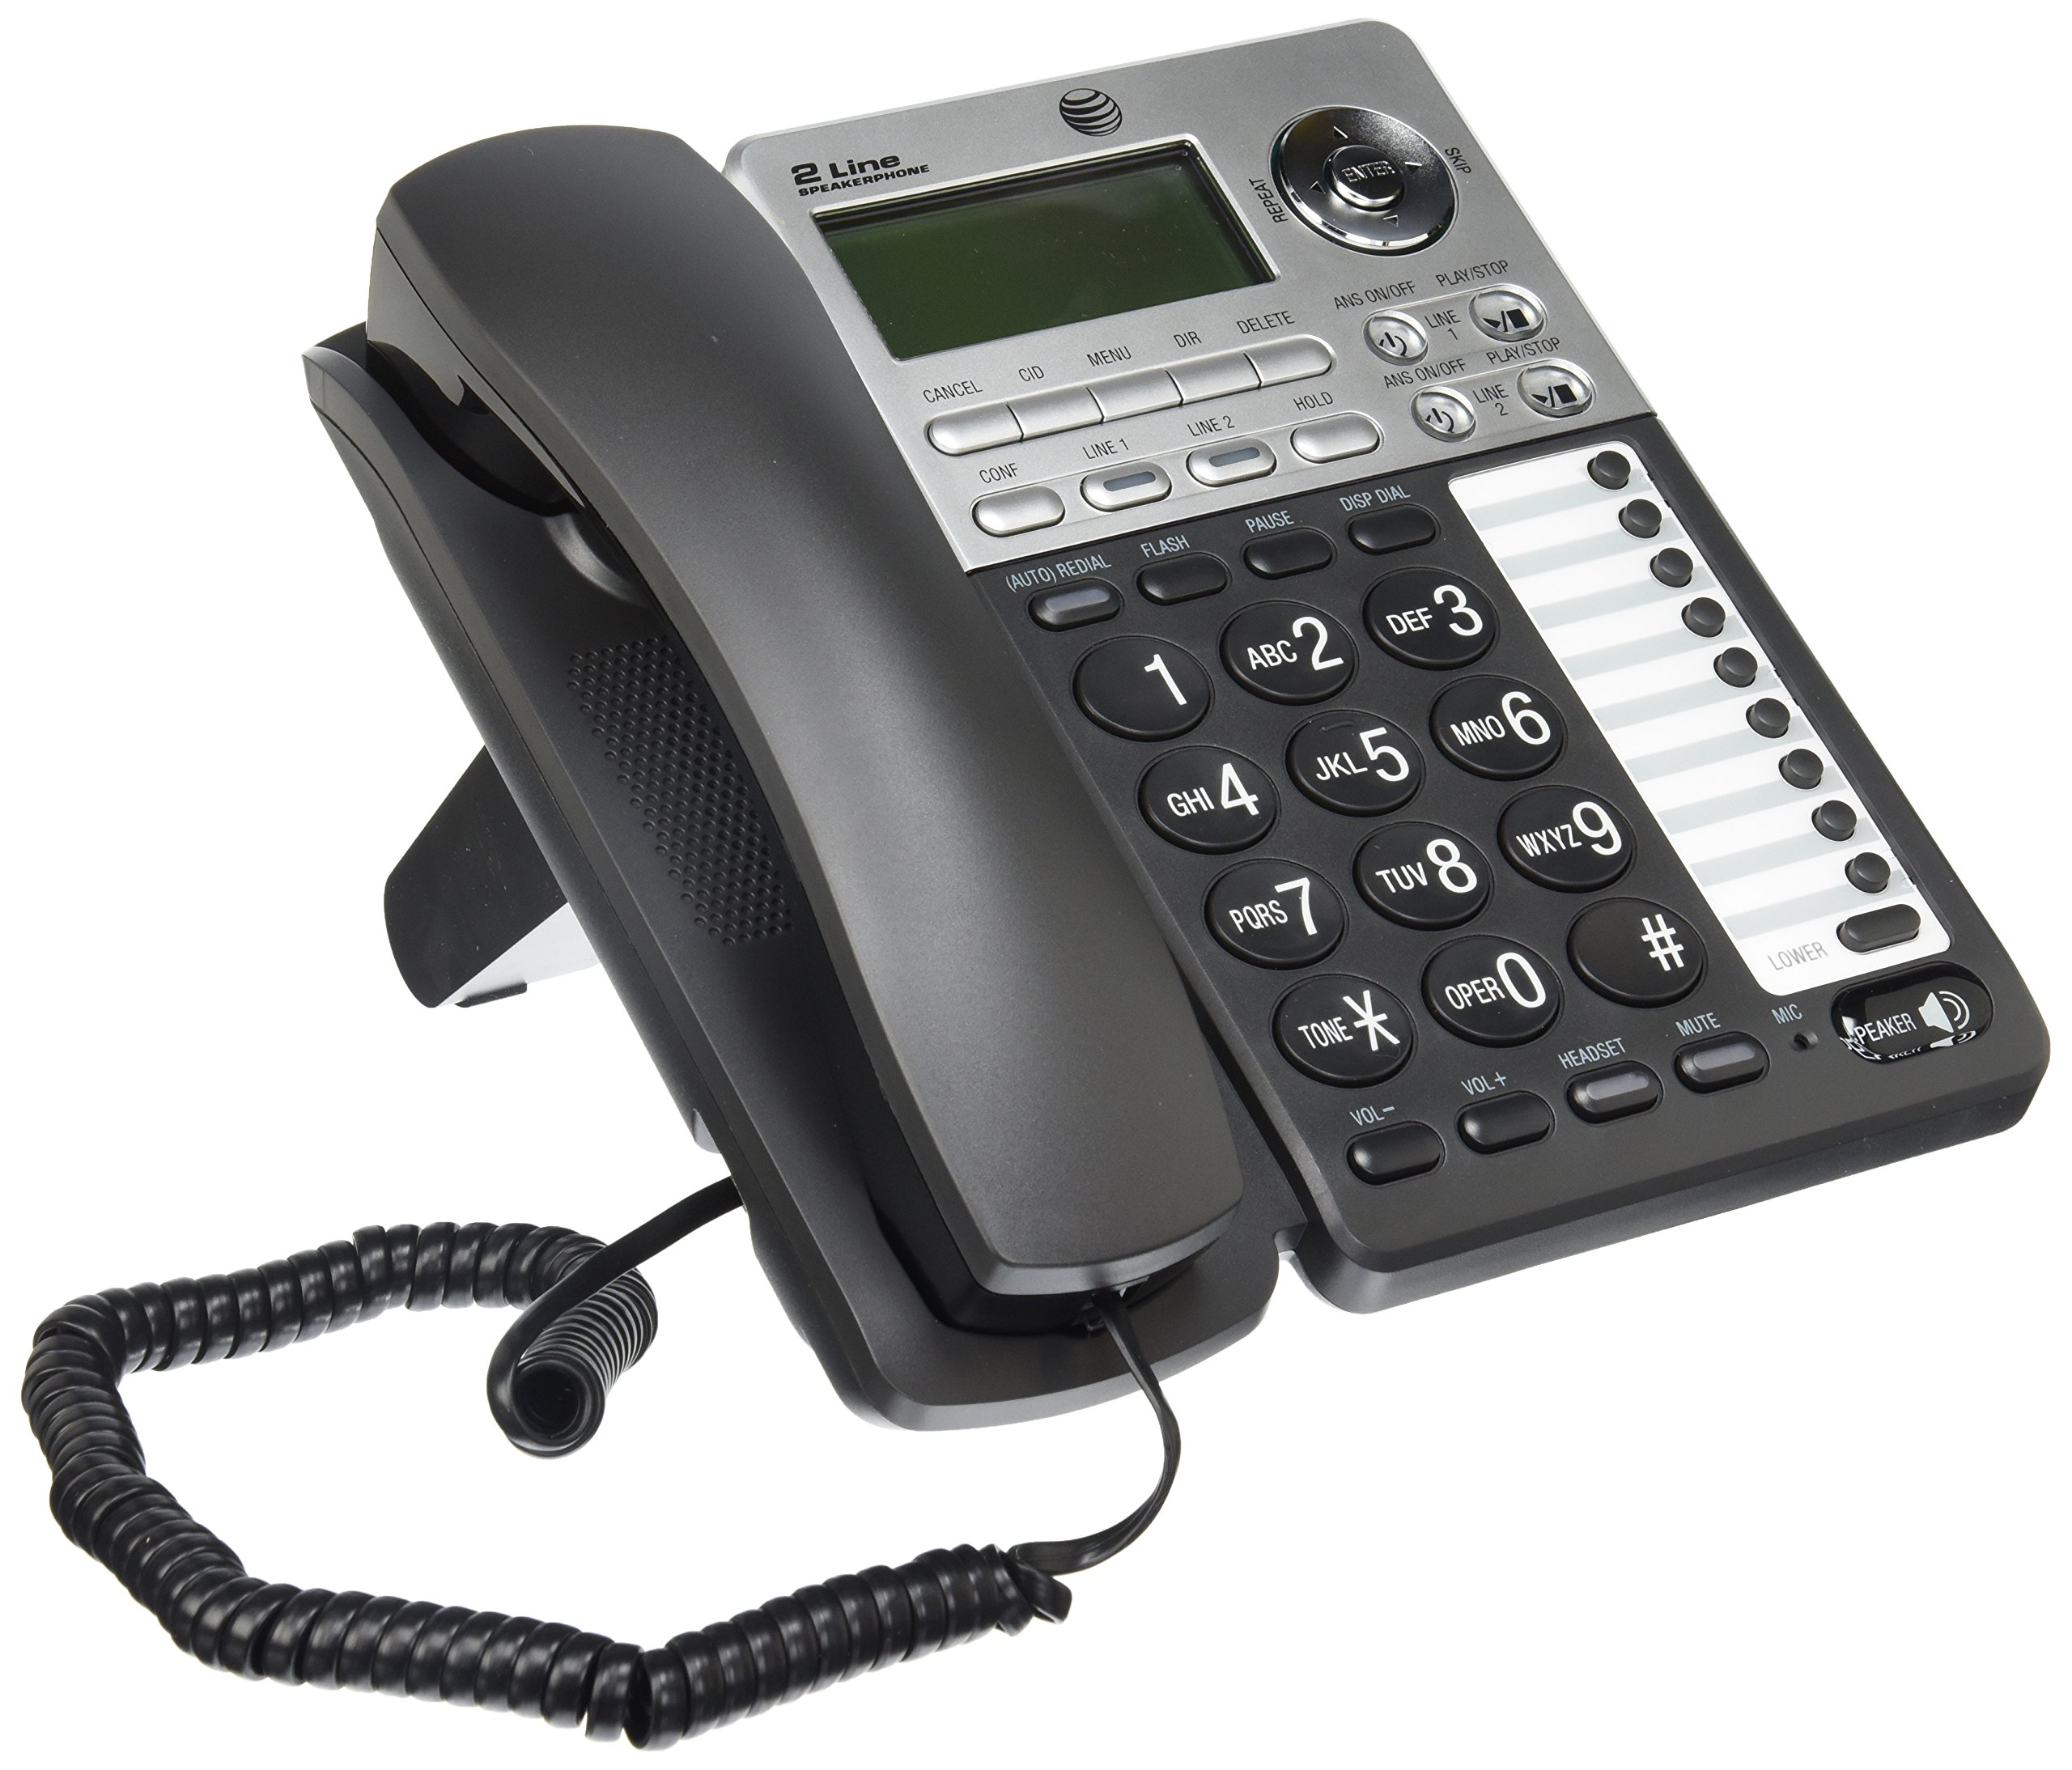 AT&T ML17939 2-Line Corded Telephone with Digital Answering System and Caller ID/Call Waiting, Black/Silver by AT&T (Image #1)